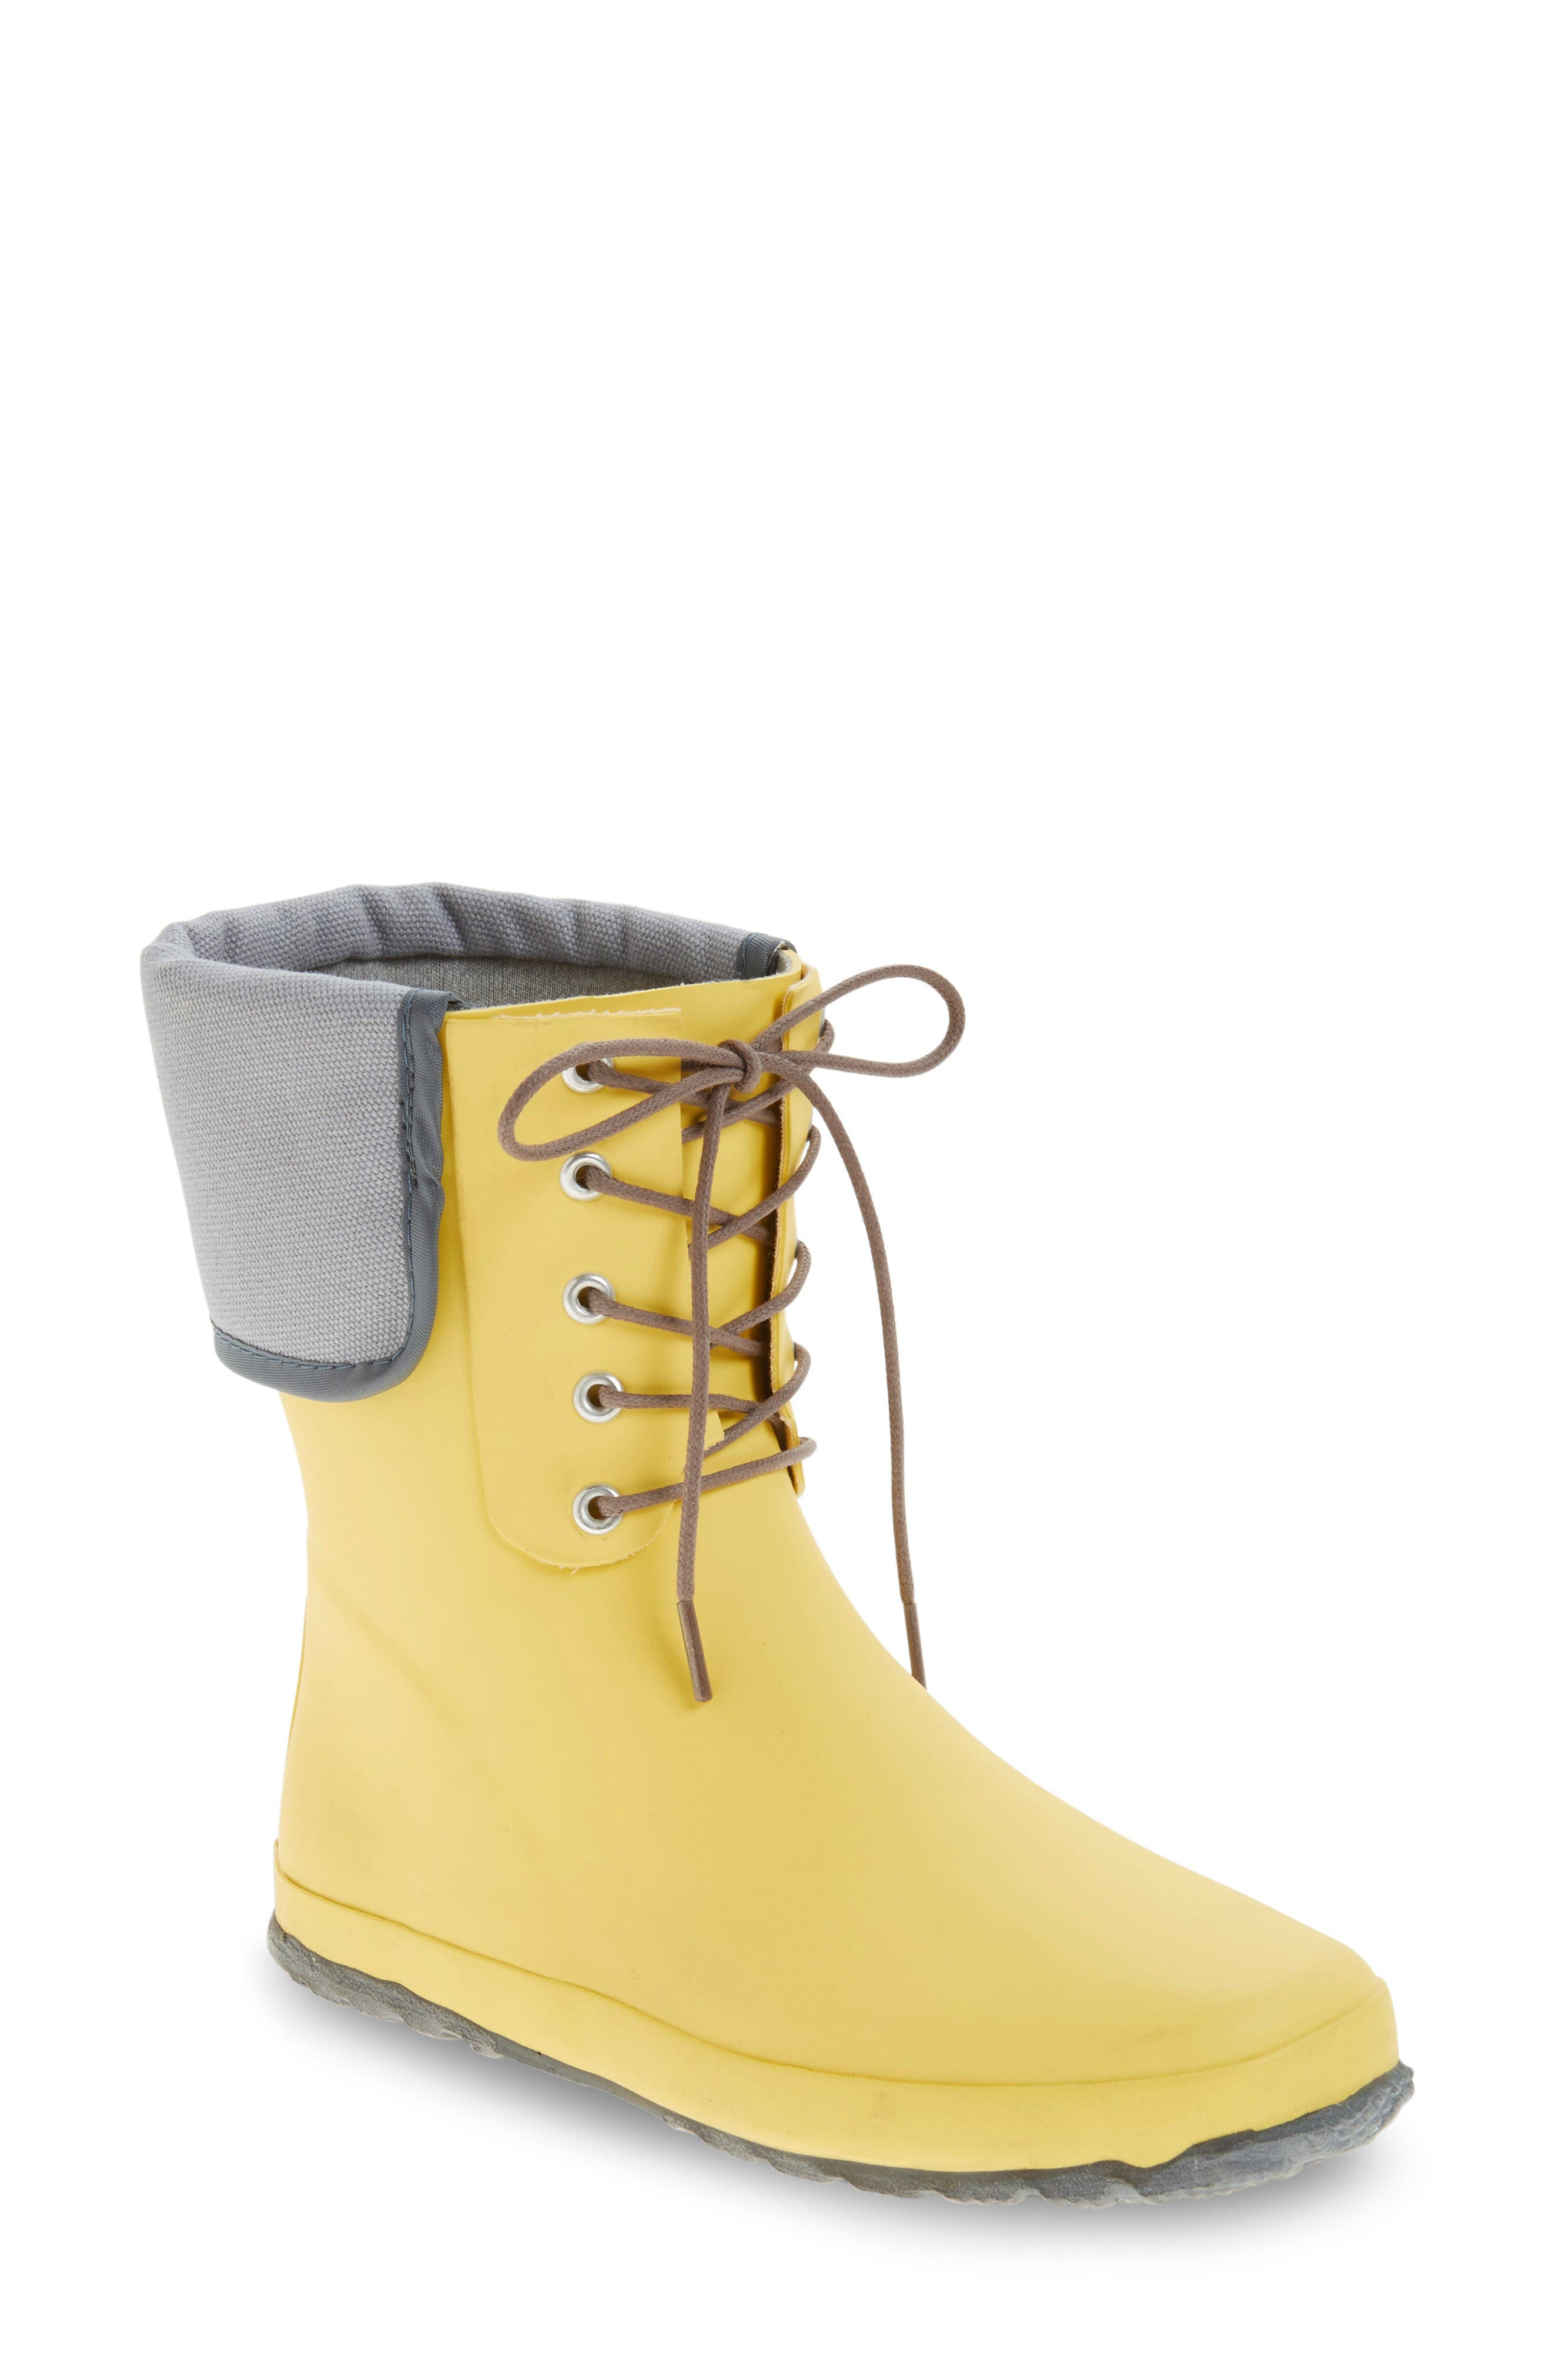 Main Image - däv Lace-Up Mid Weatherproof Boot (Women)